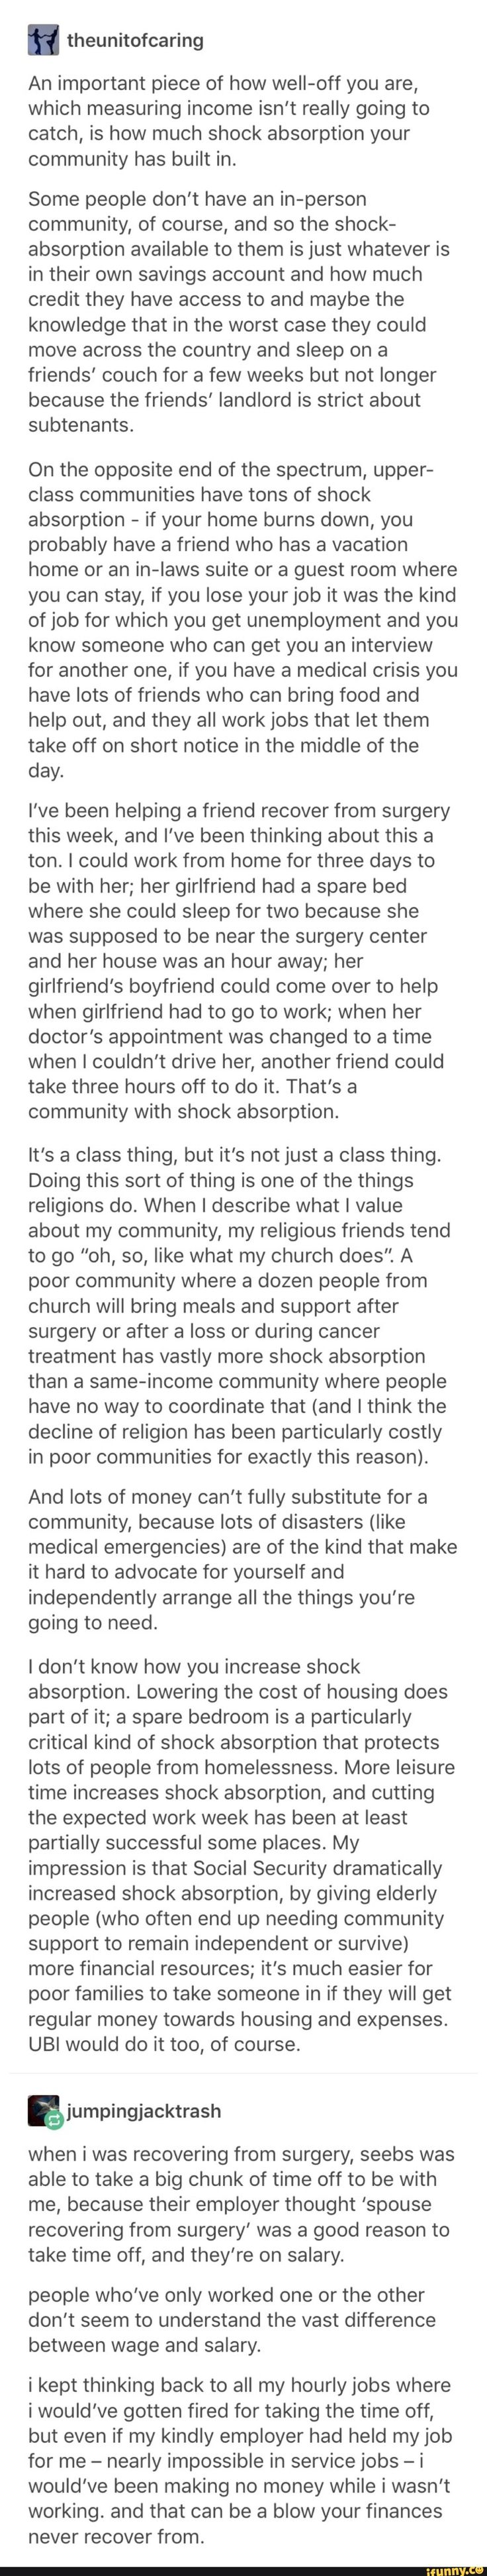 This is why I wish there was a good alternative to the community that churches can provide. I'm not religious and don't want to be, but I wish there was another way to be community minded